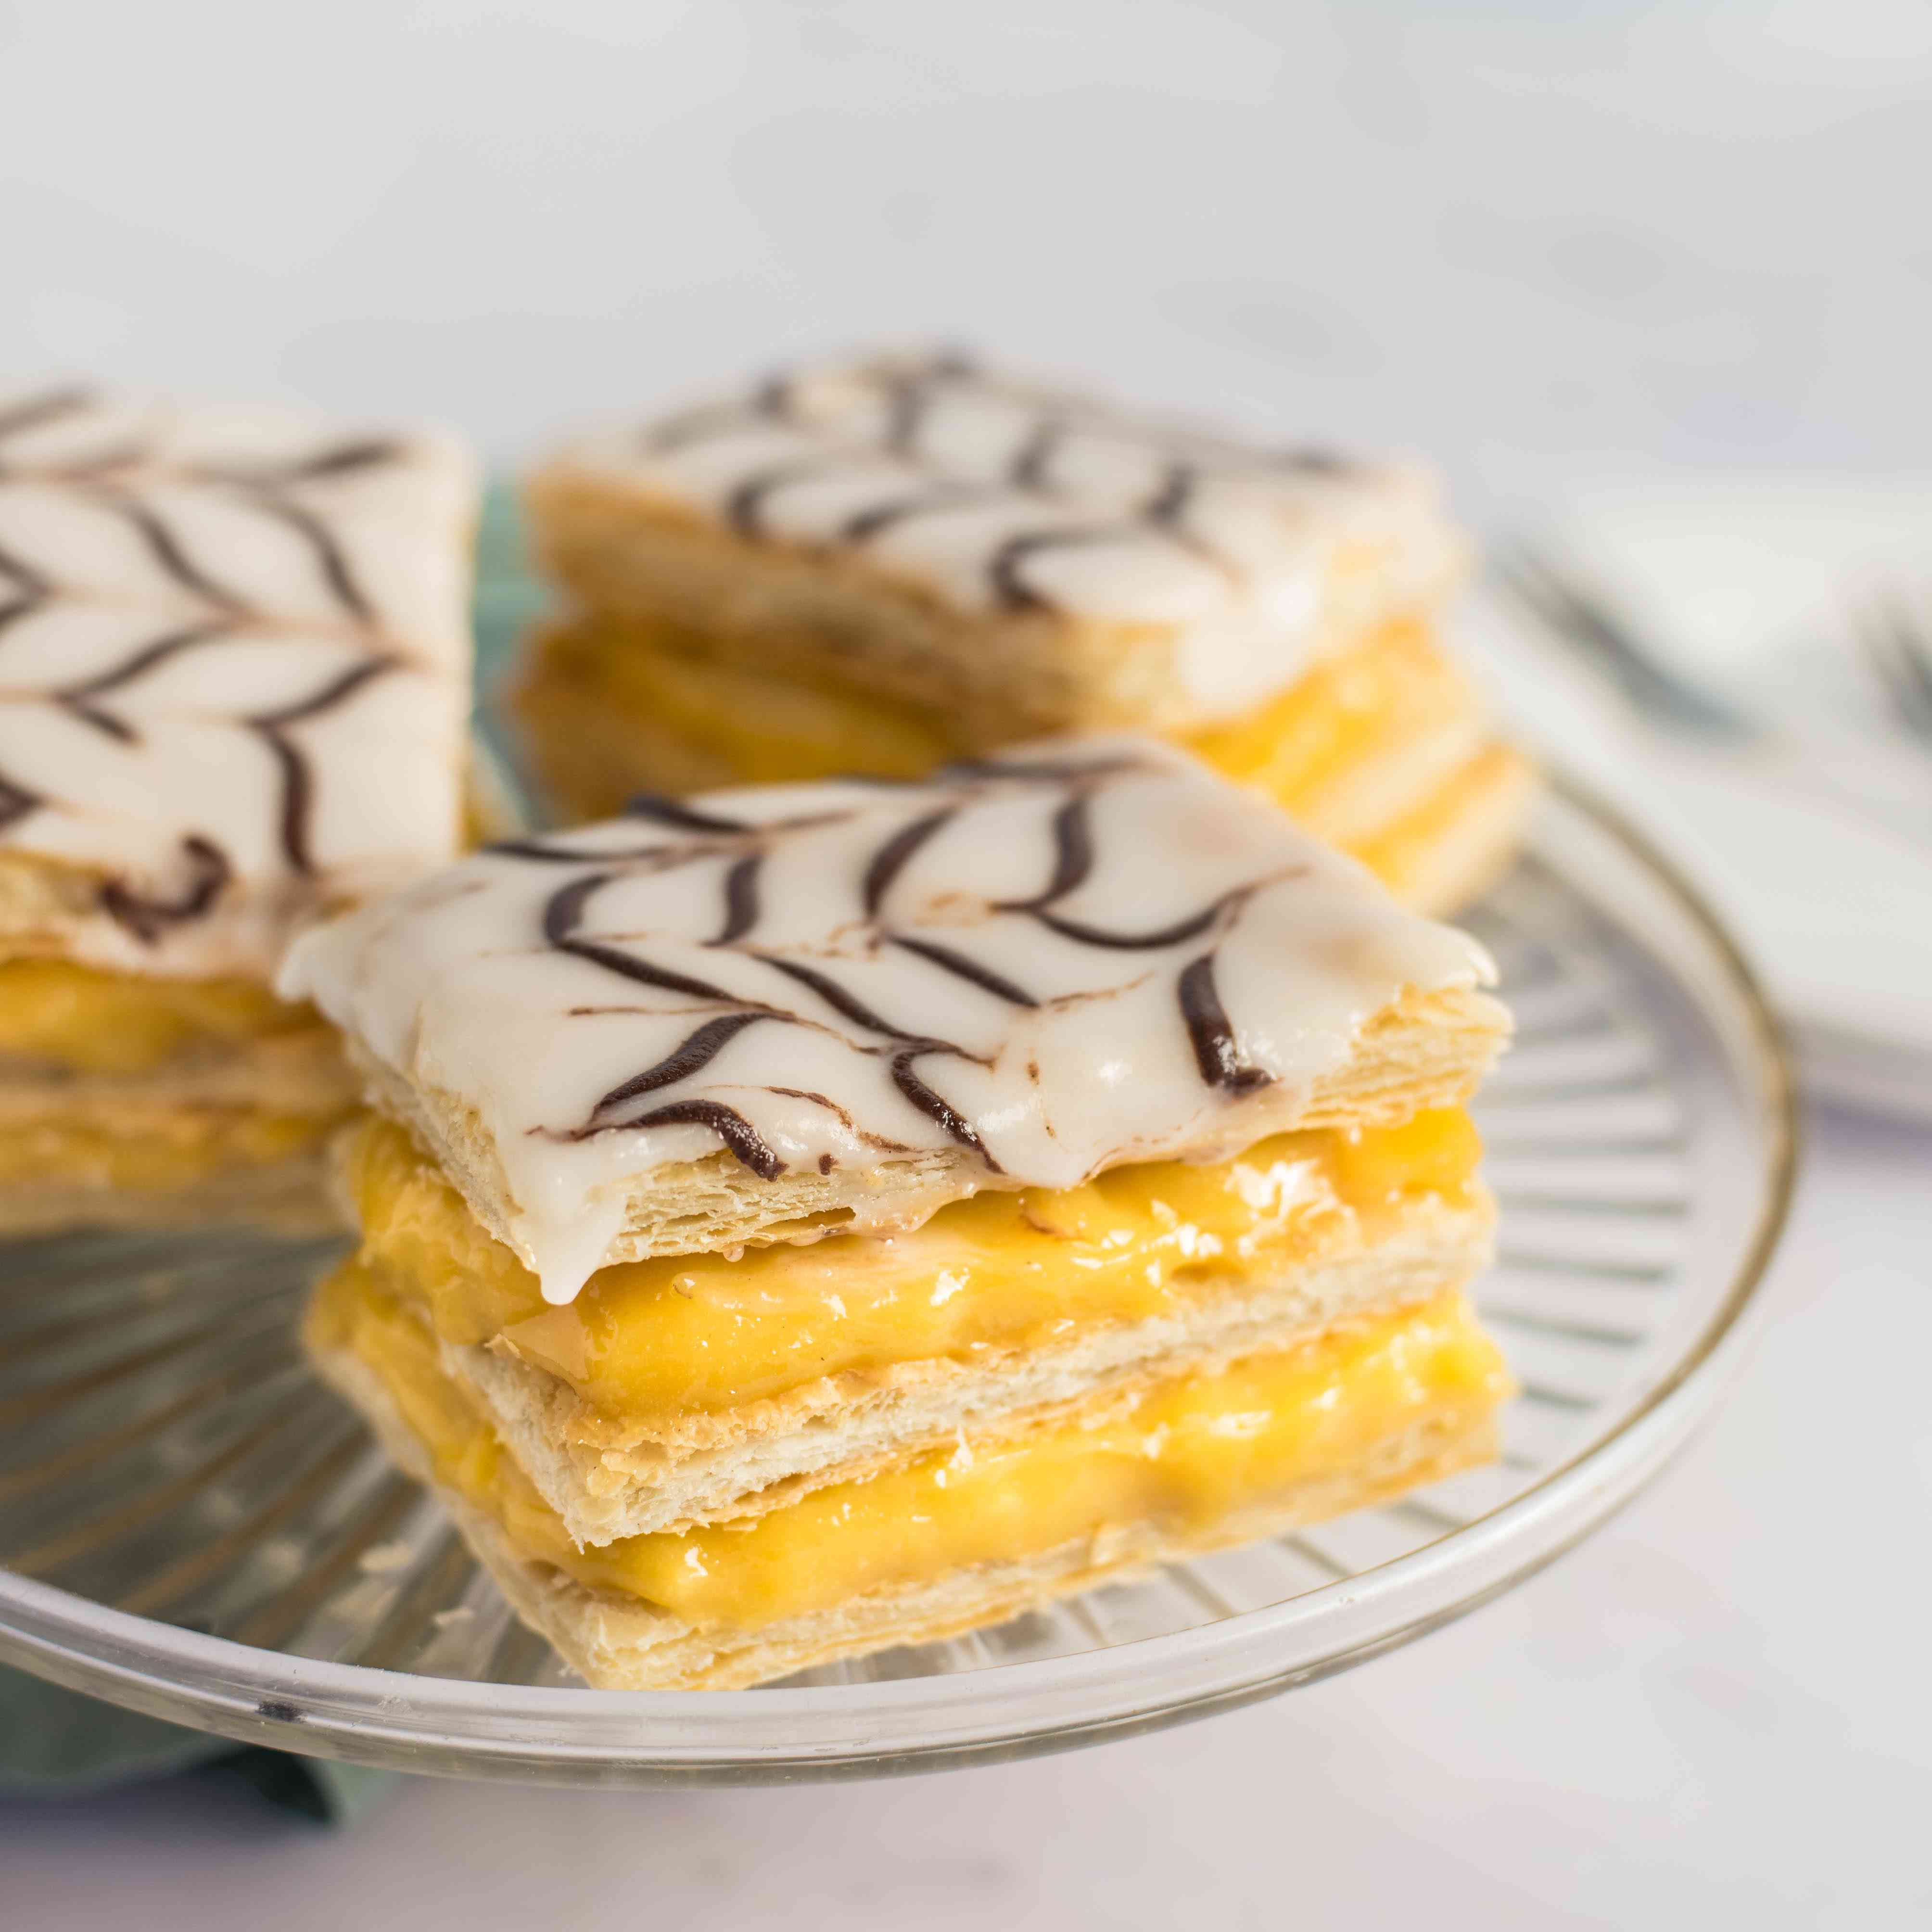 The finished mille-feuille are served on a plate